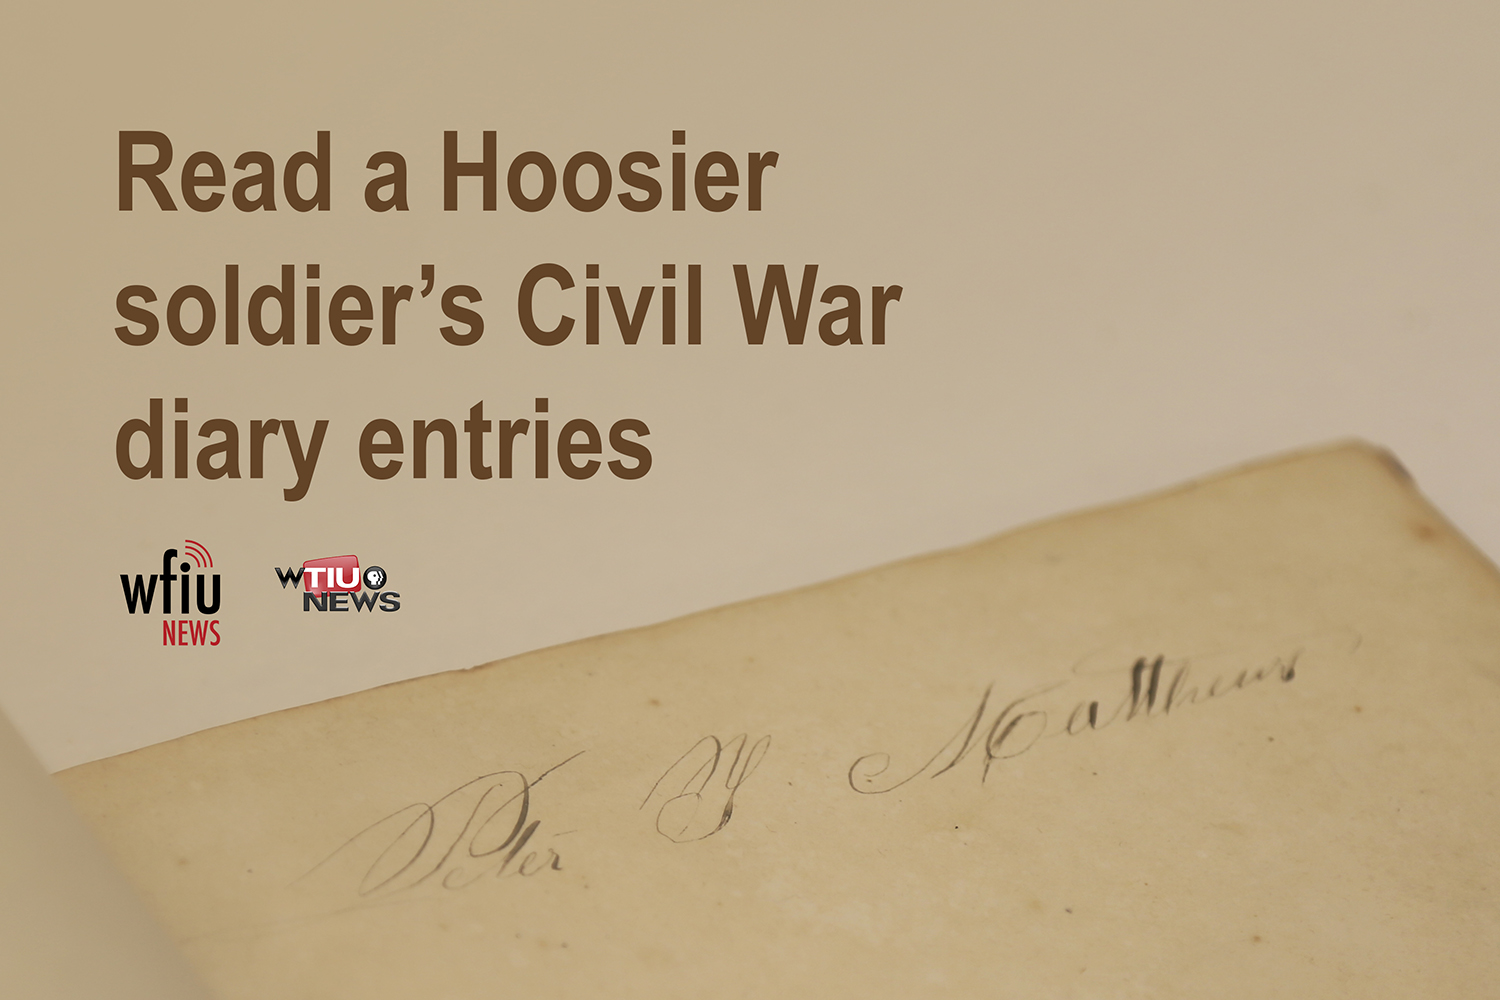 Civil war graphic with peter matthews' signature and the words read a hoosier solider's civil war diary entries